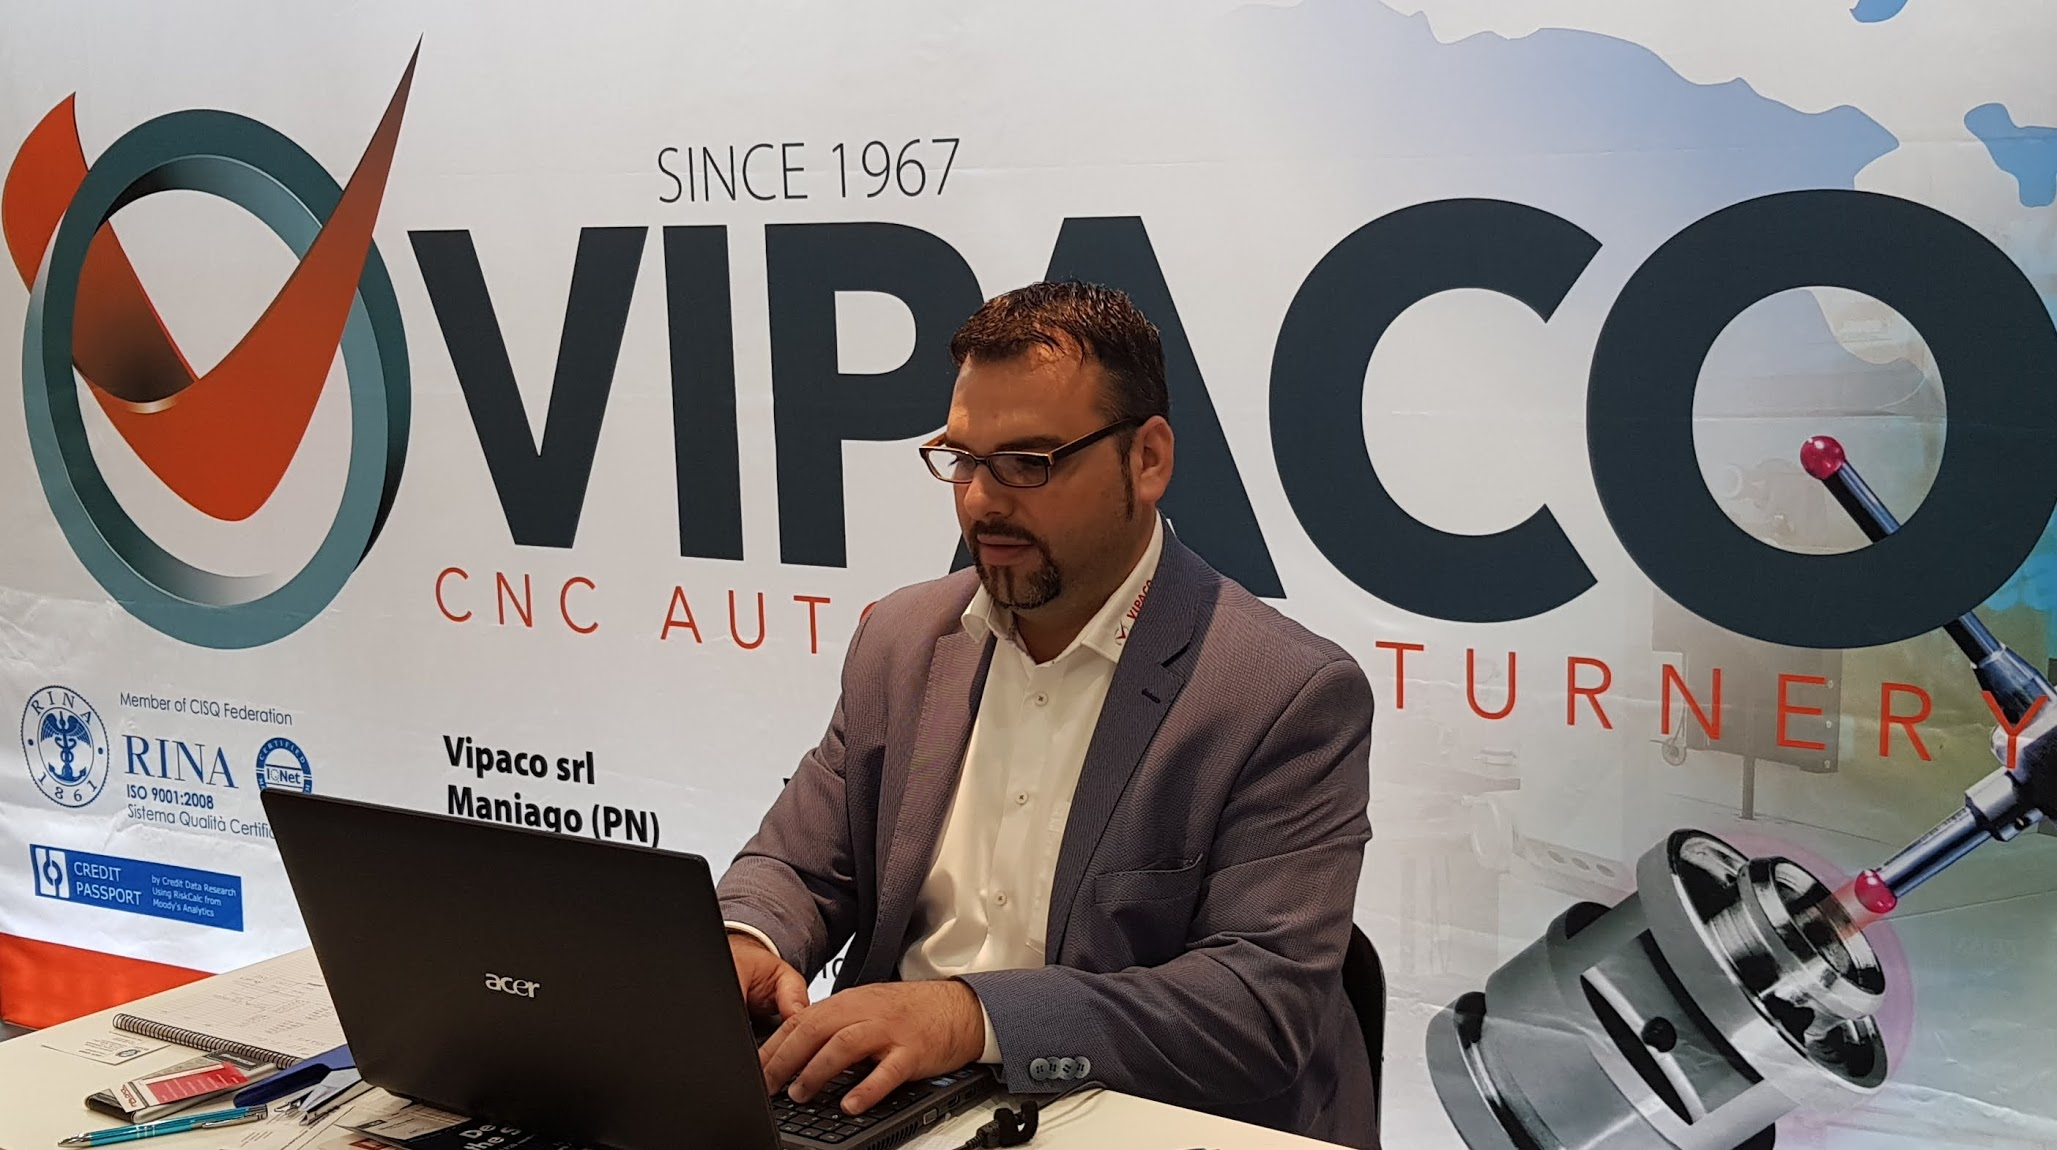 VIPACO Industries GmbH Hannover Messe 2018VIPACO Industries GmbH Hannover Messe 2018